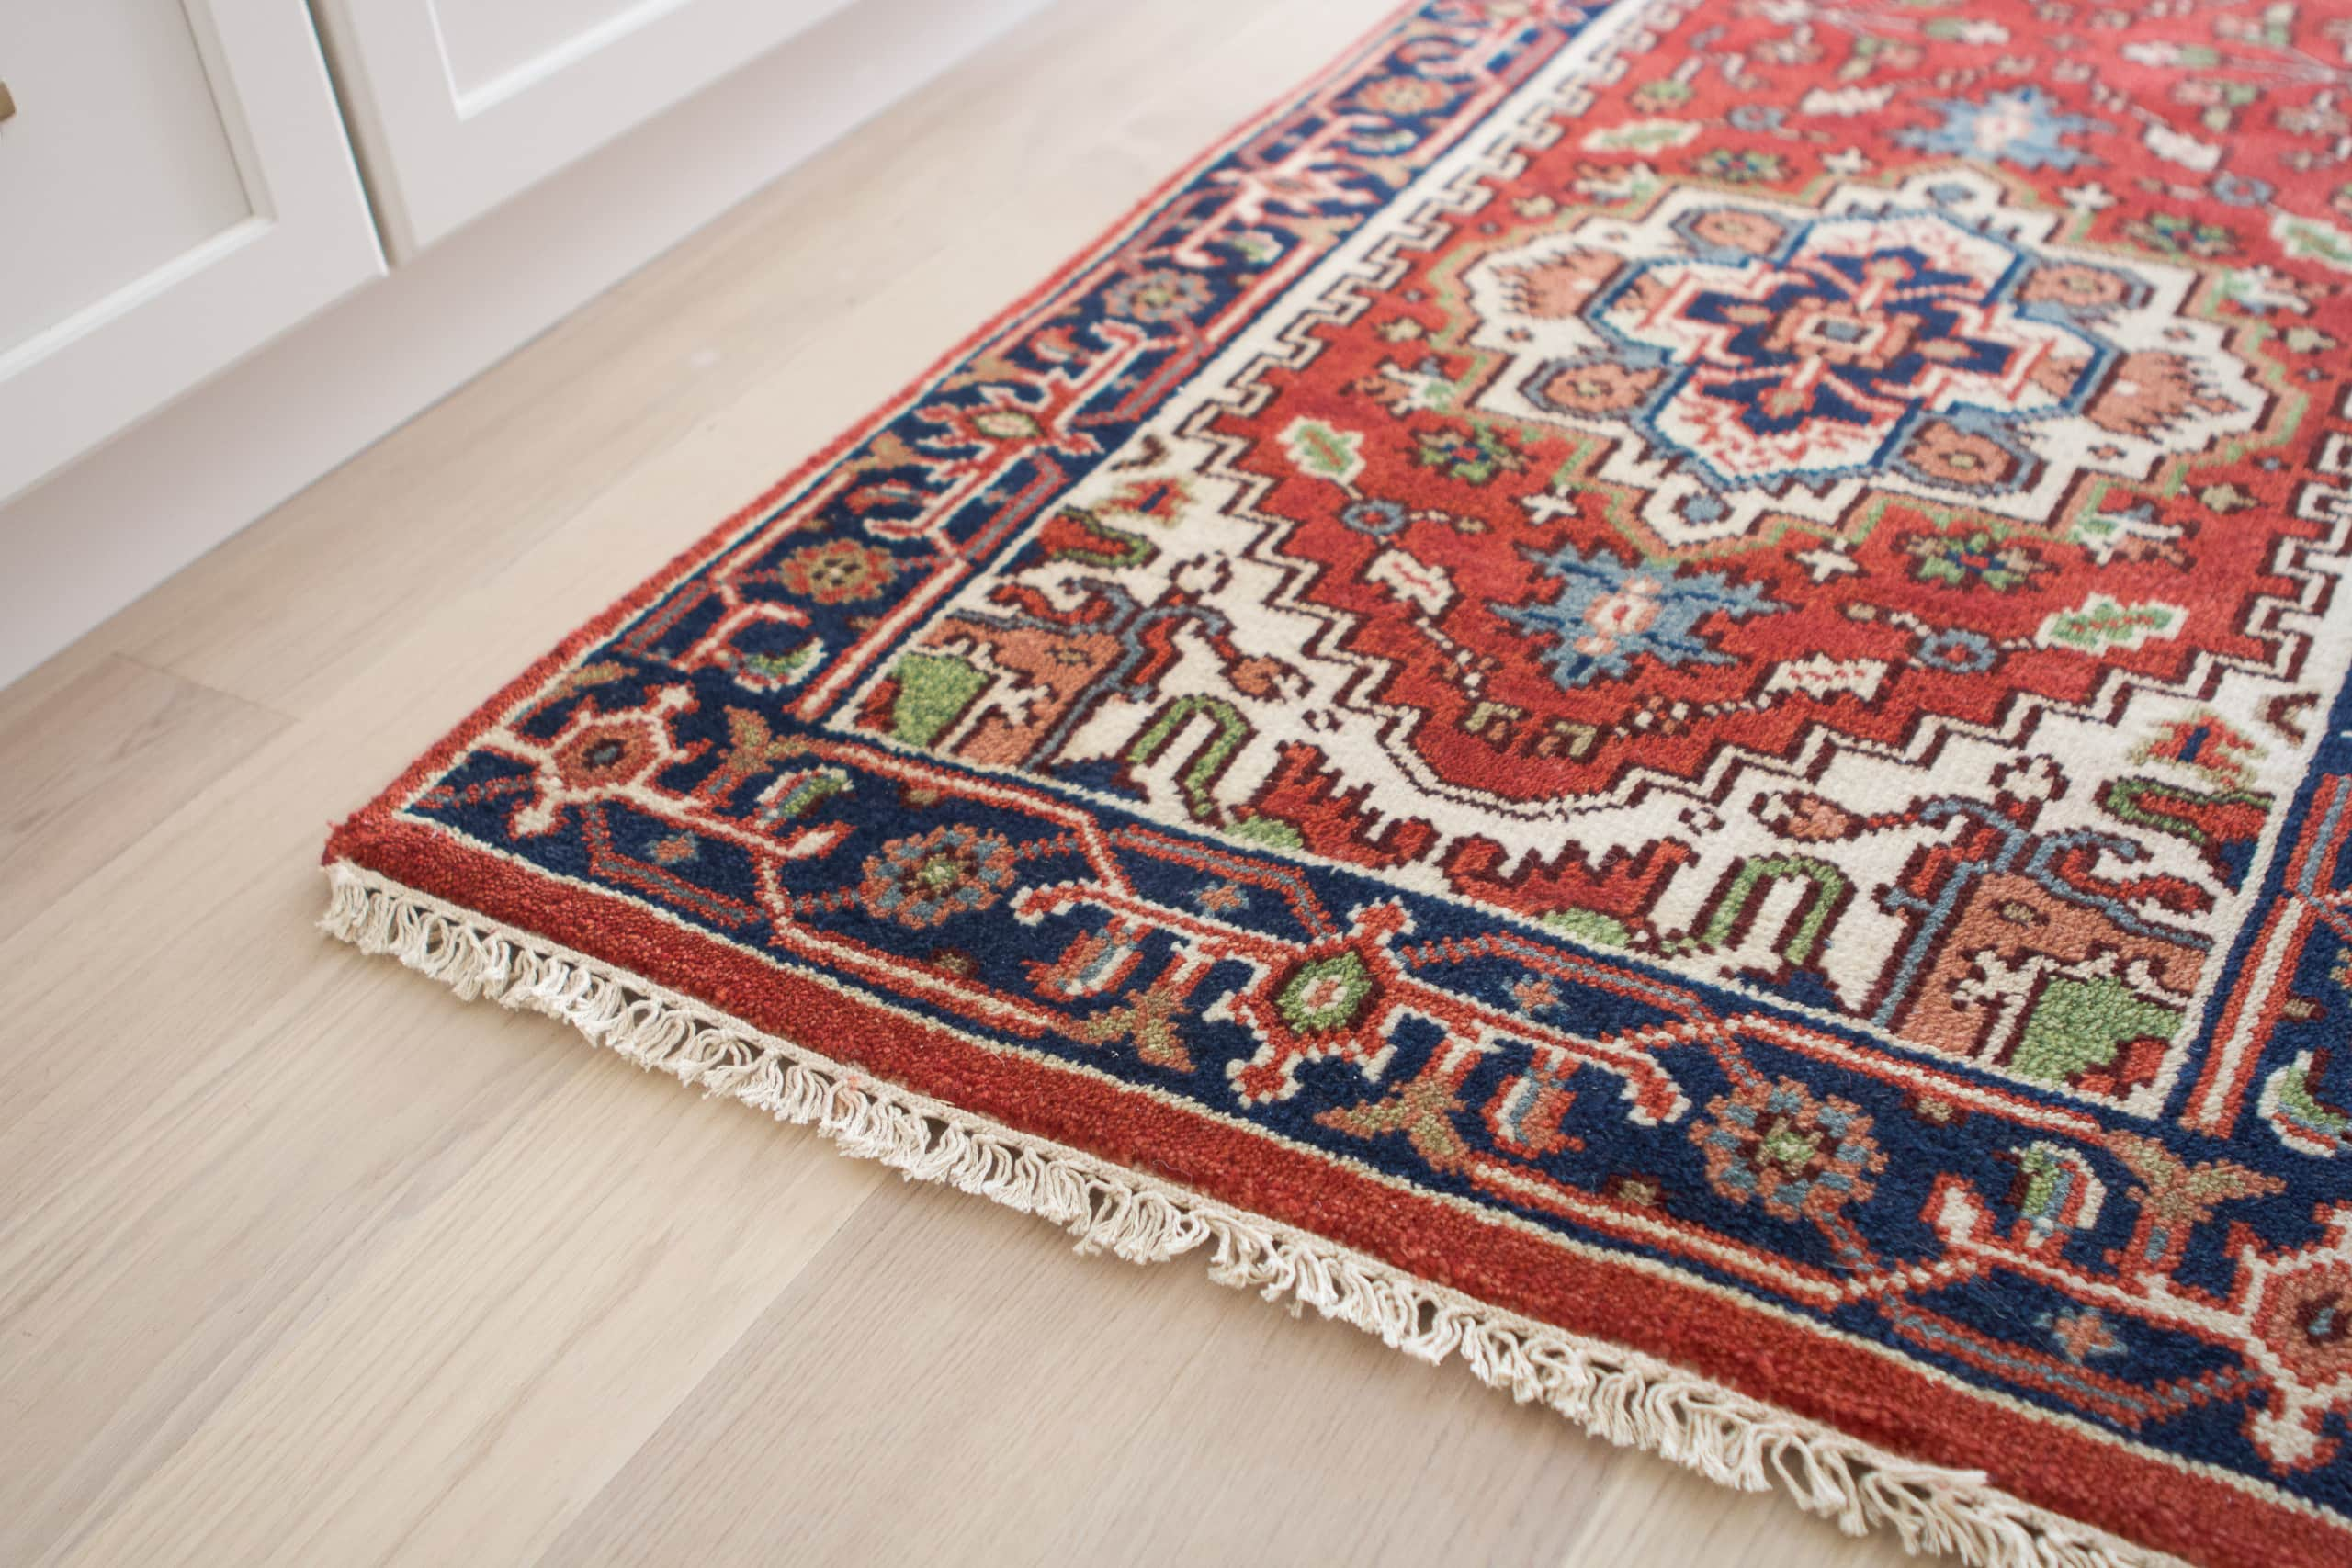 Finding a colorful rug from India